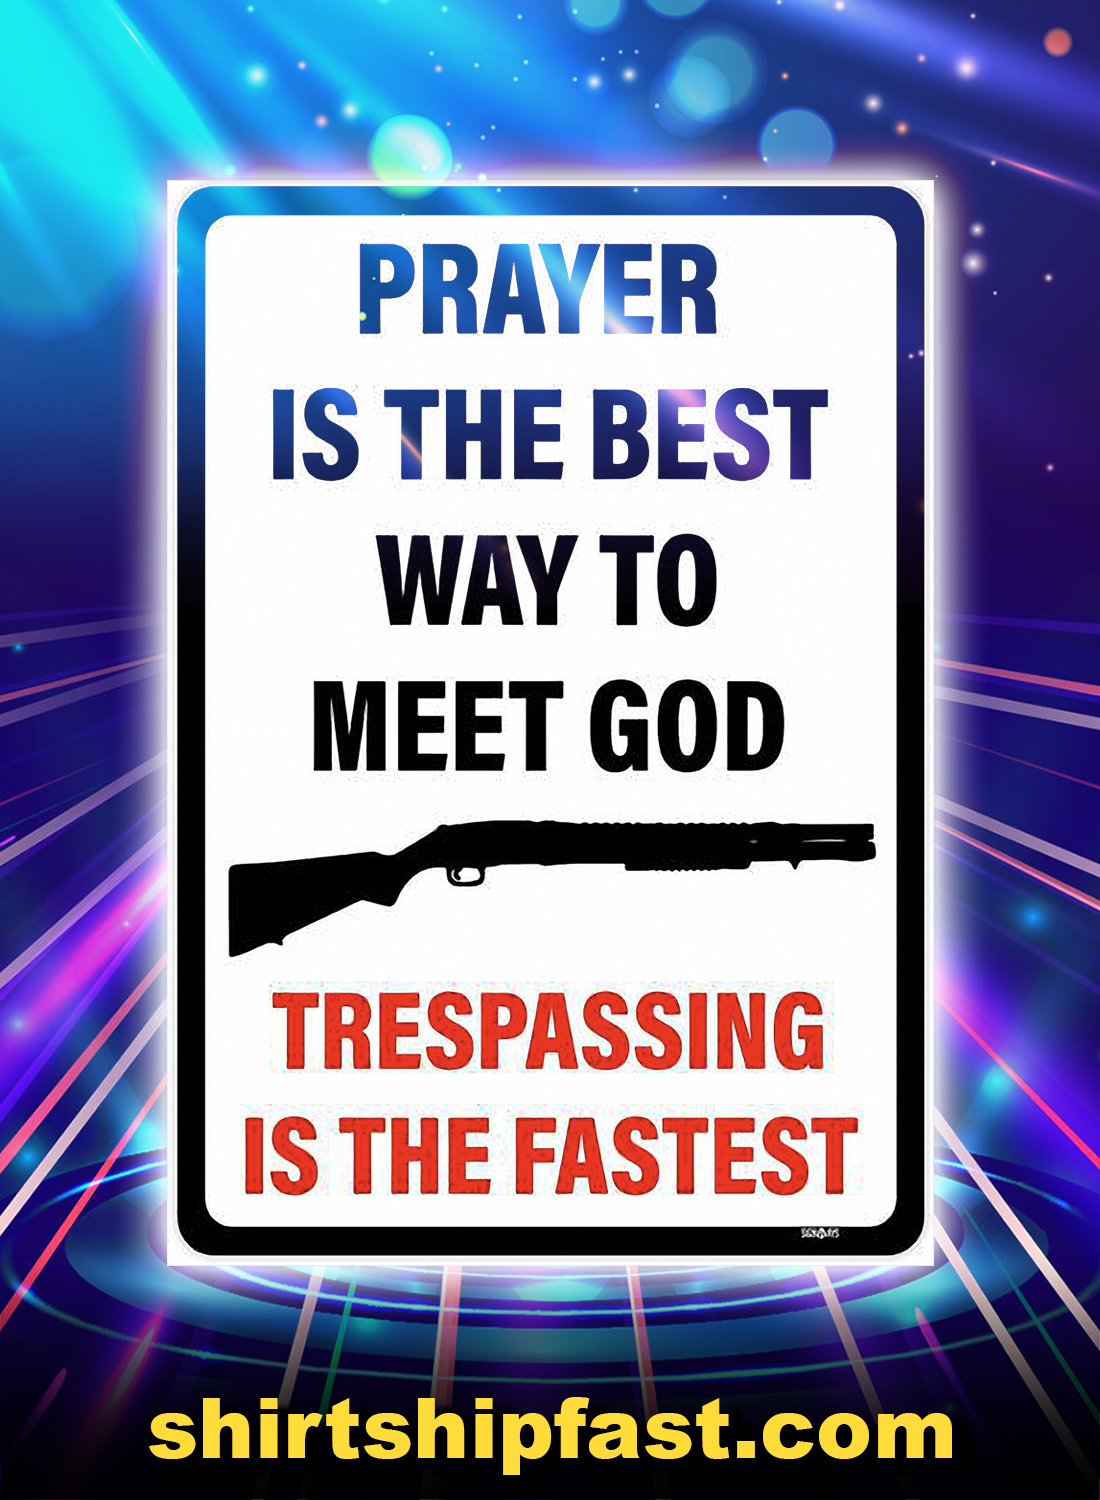 Prayer is the best way to meet god trespassing is the fastest sign poster - A4